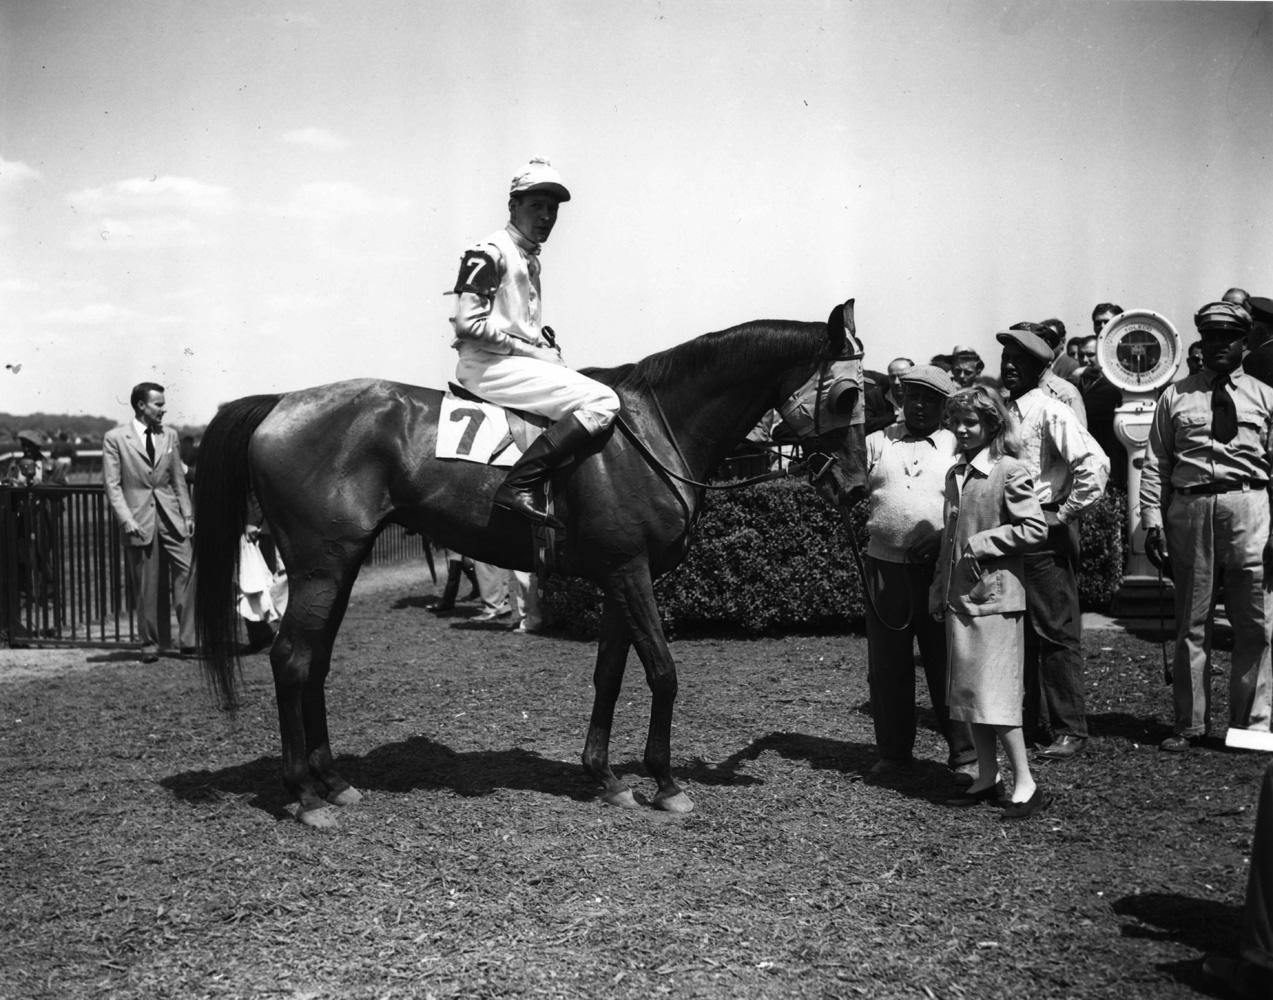 Elkridge (P. Smithwick up) in the winner's circle for the 1949 Meadow Brook Handicap Steeplechase at Belmont Park (Keeneland Library Morgan Collection/Museum Collection)